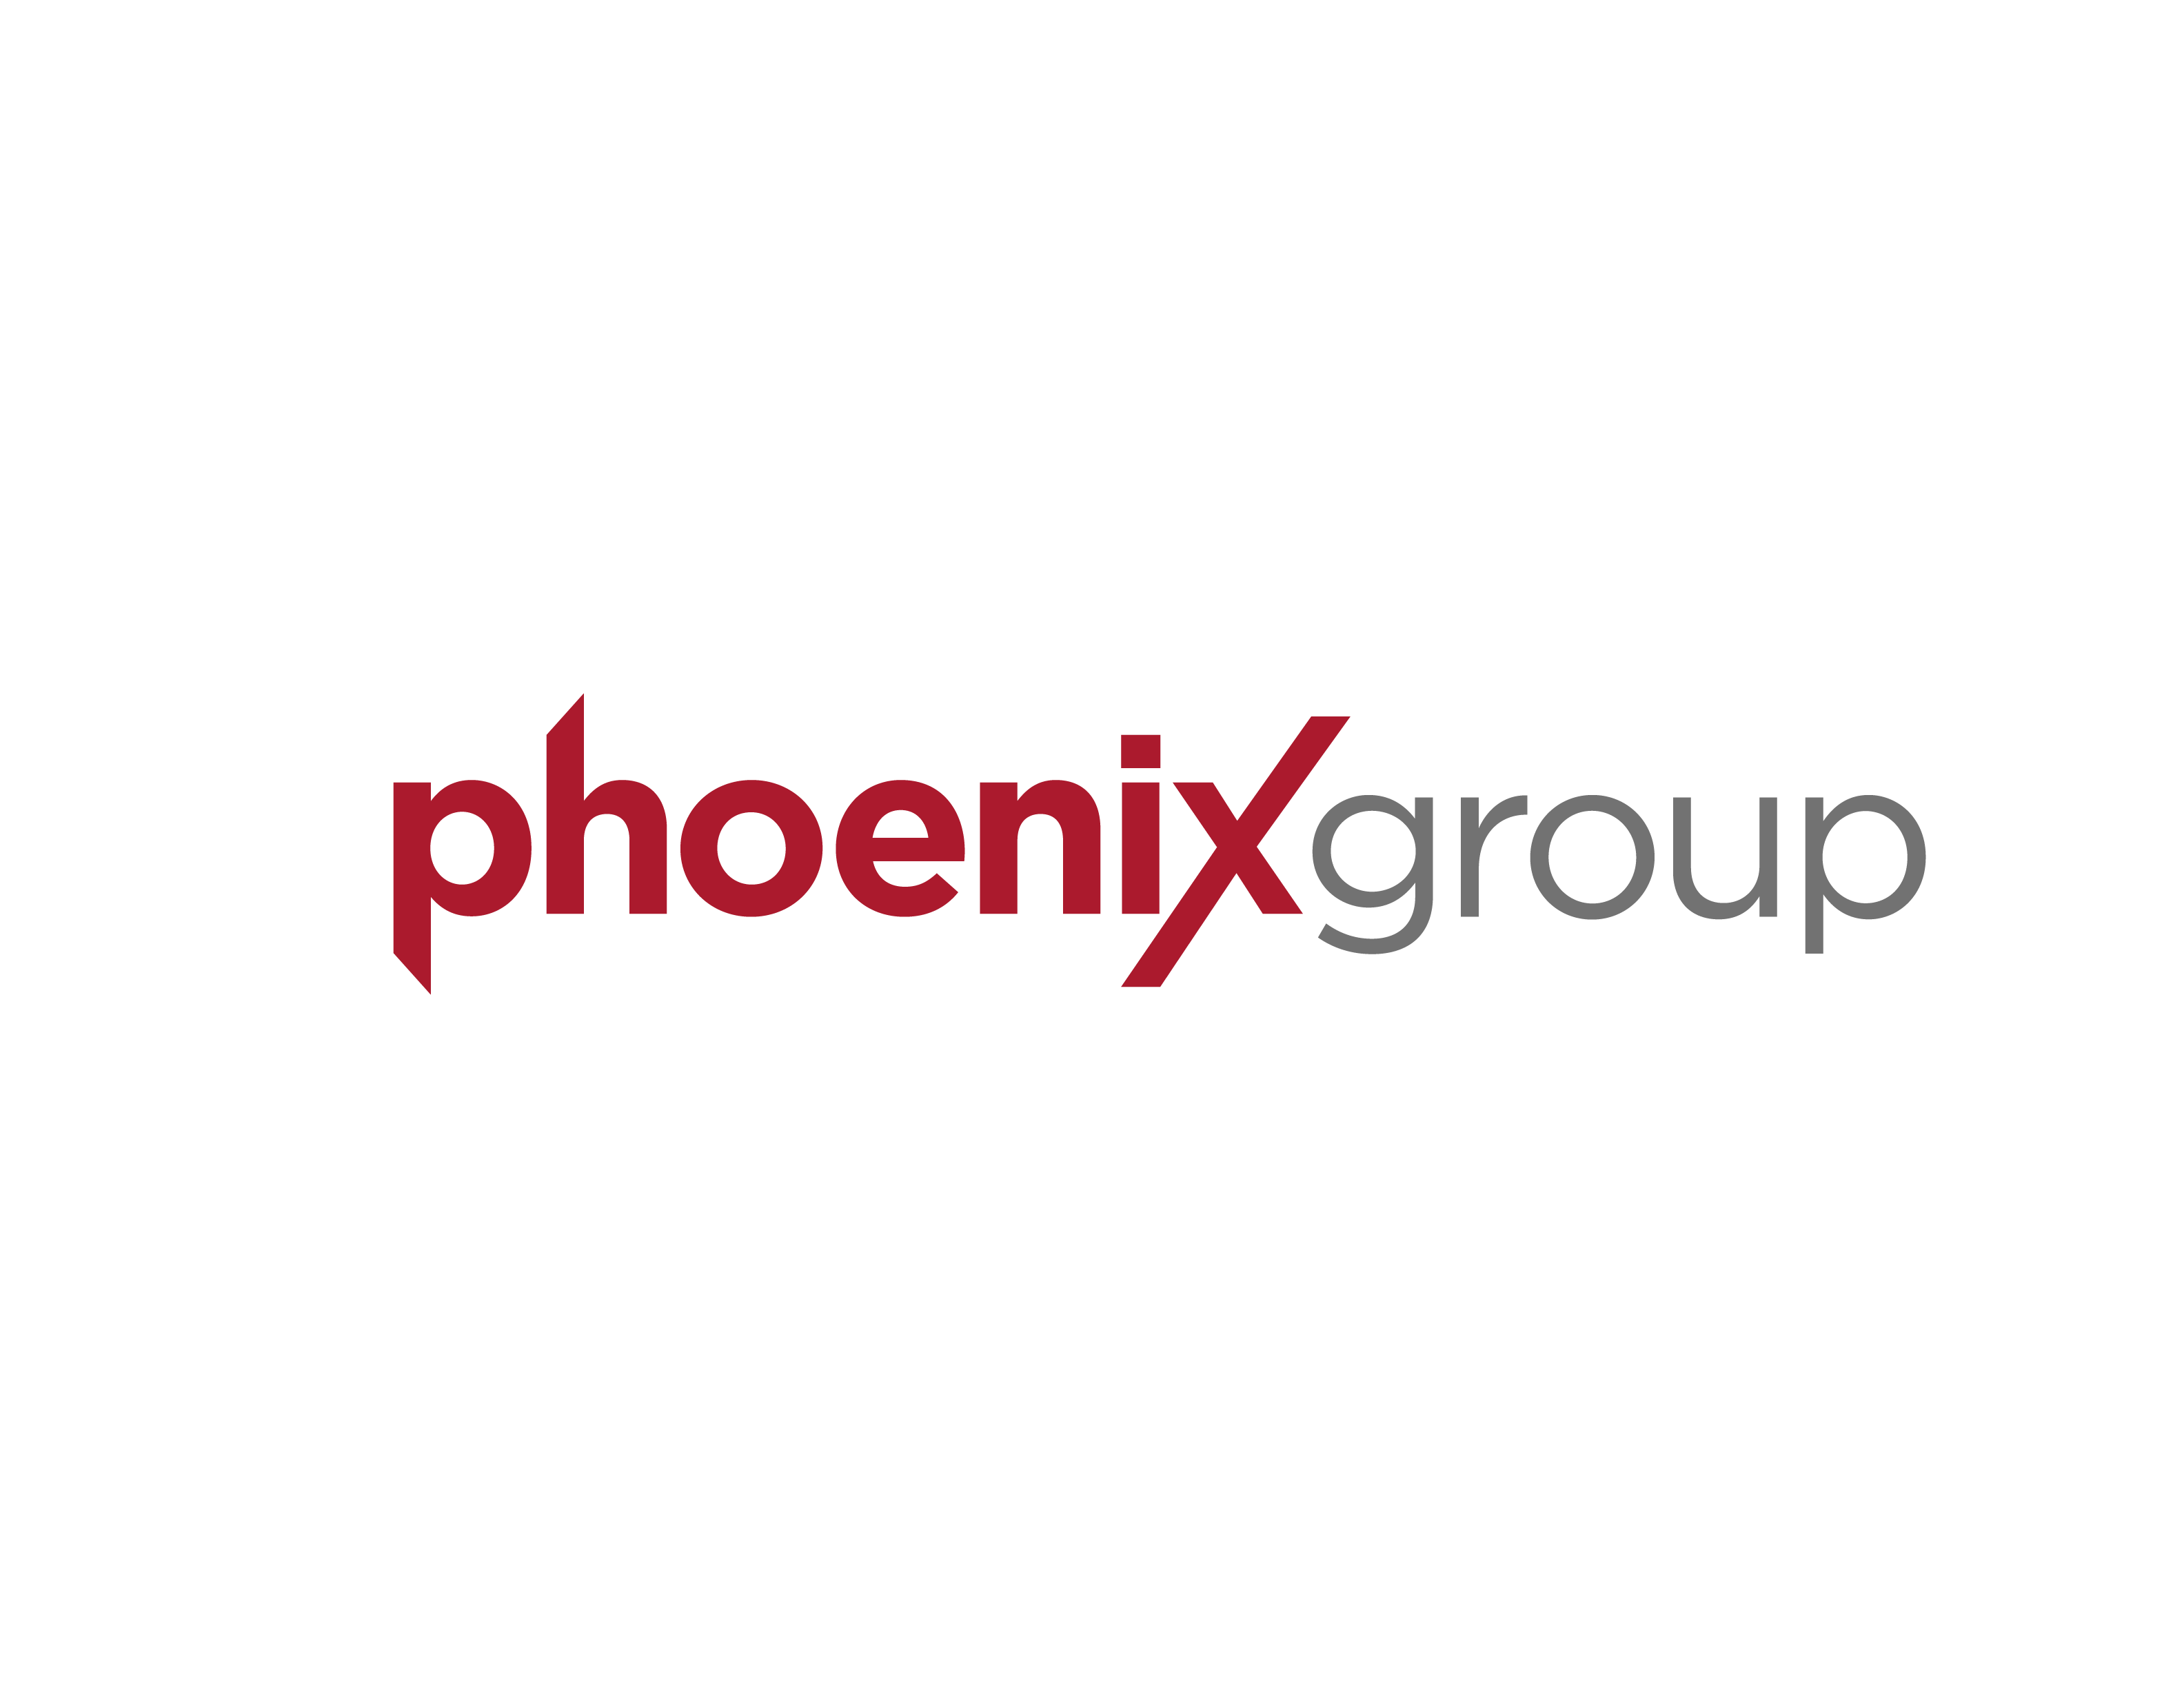 The Phoenix Group Logo